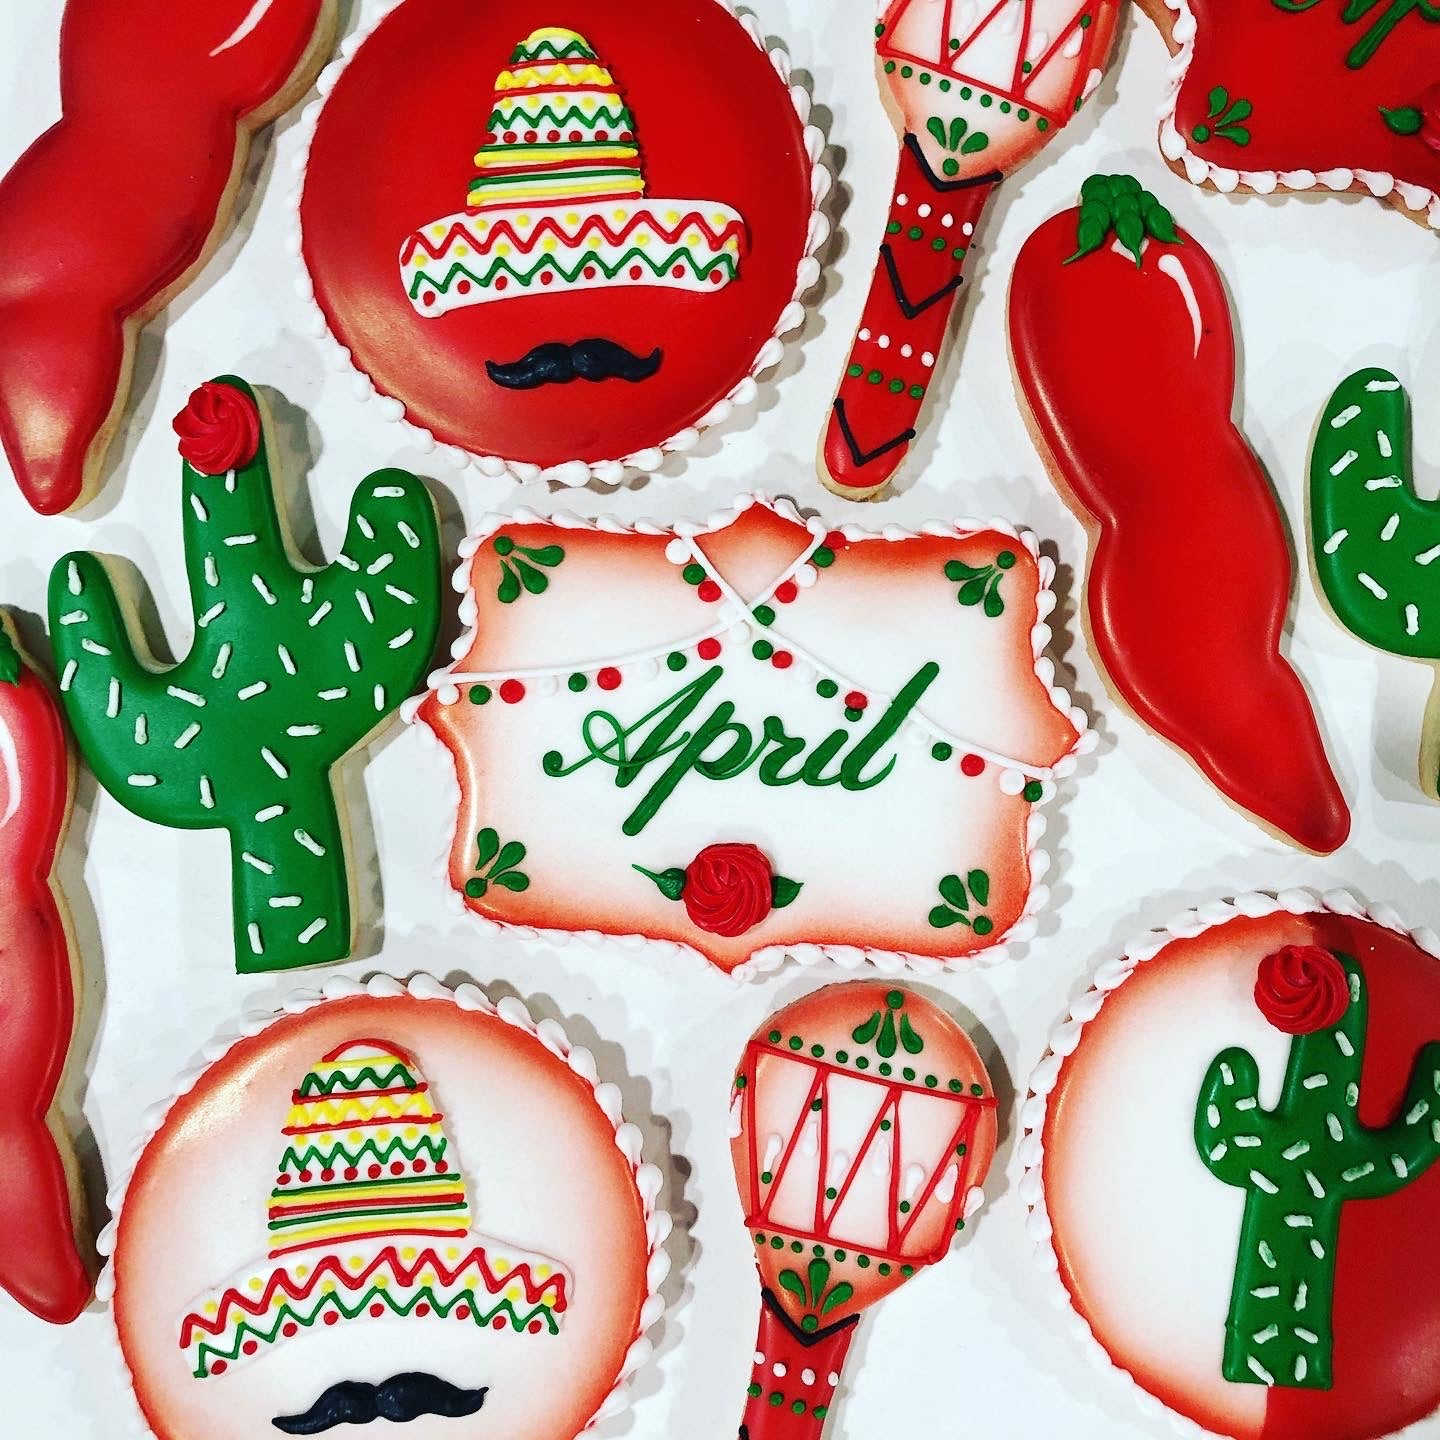 Fiesta Sugar Cookie Set #2